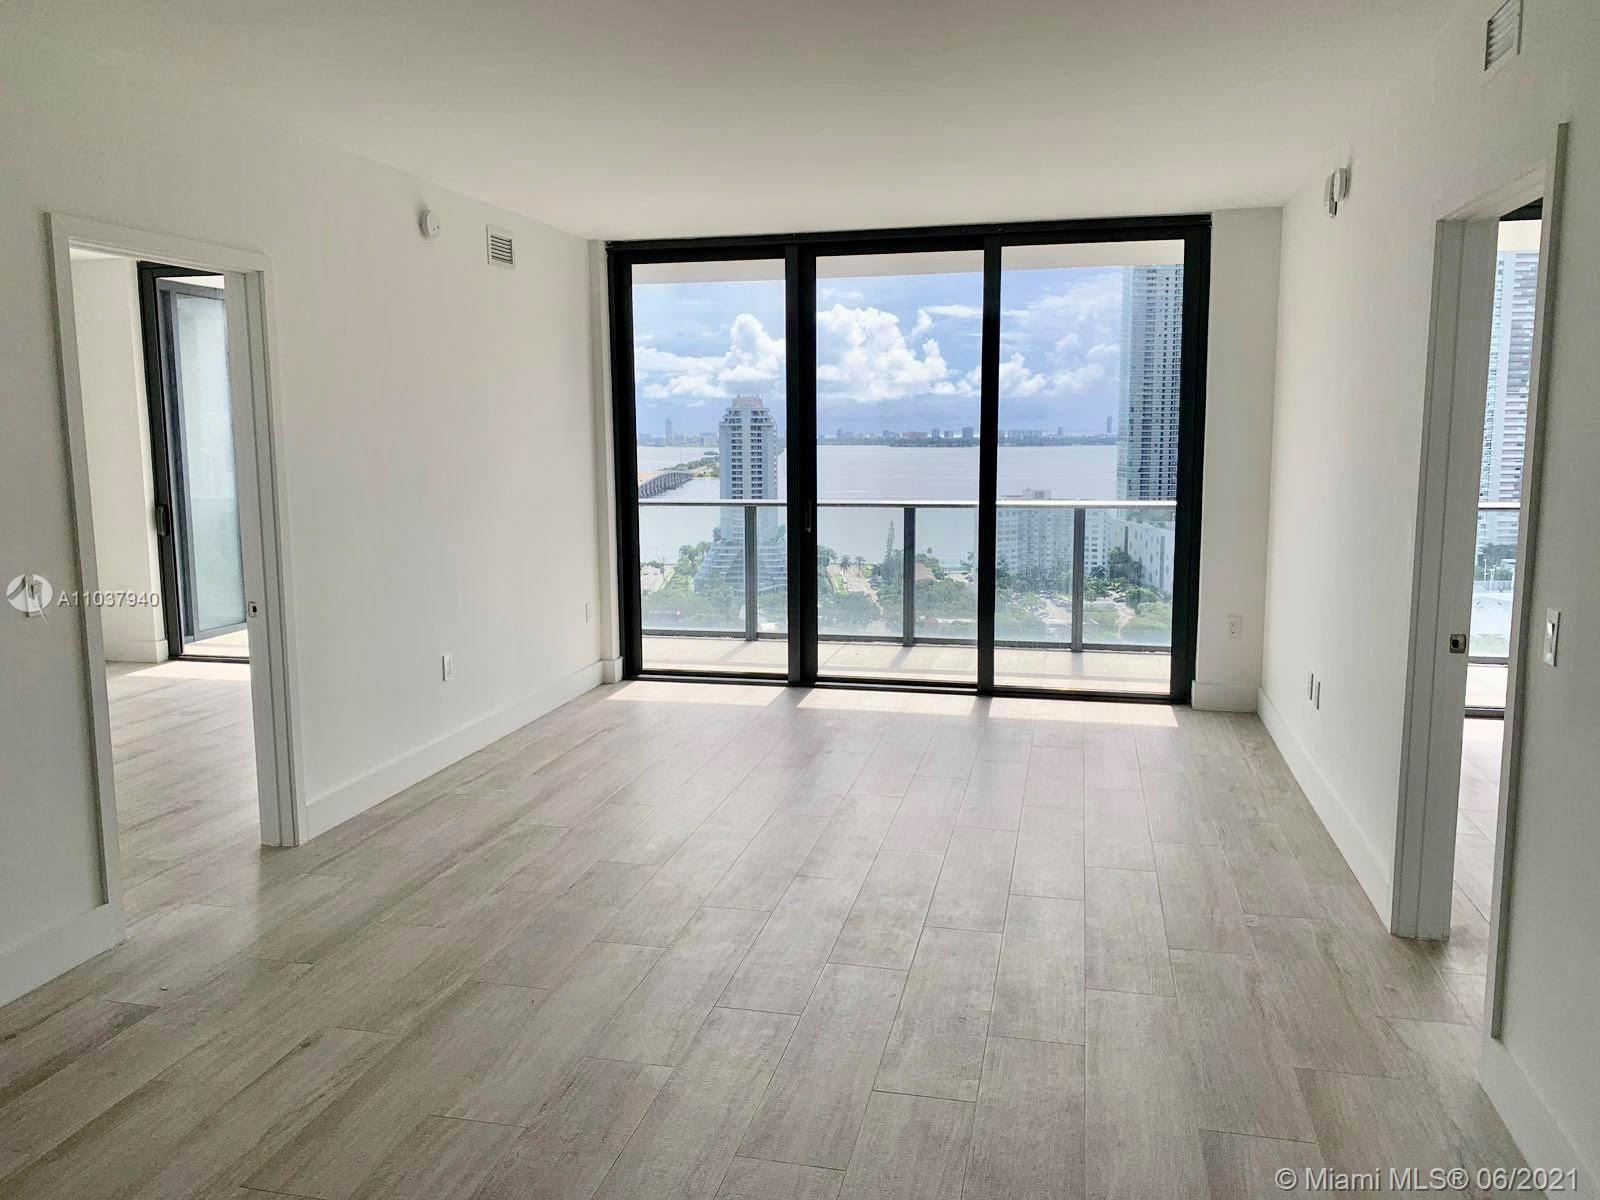 Tenant occupied until July 7th. This 2/2 plus DEN unit is absolutely gorgeous. Owners paid for an up